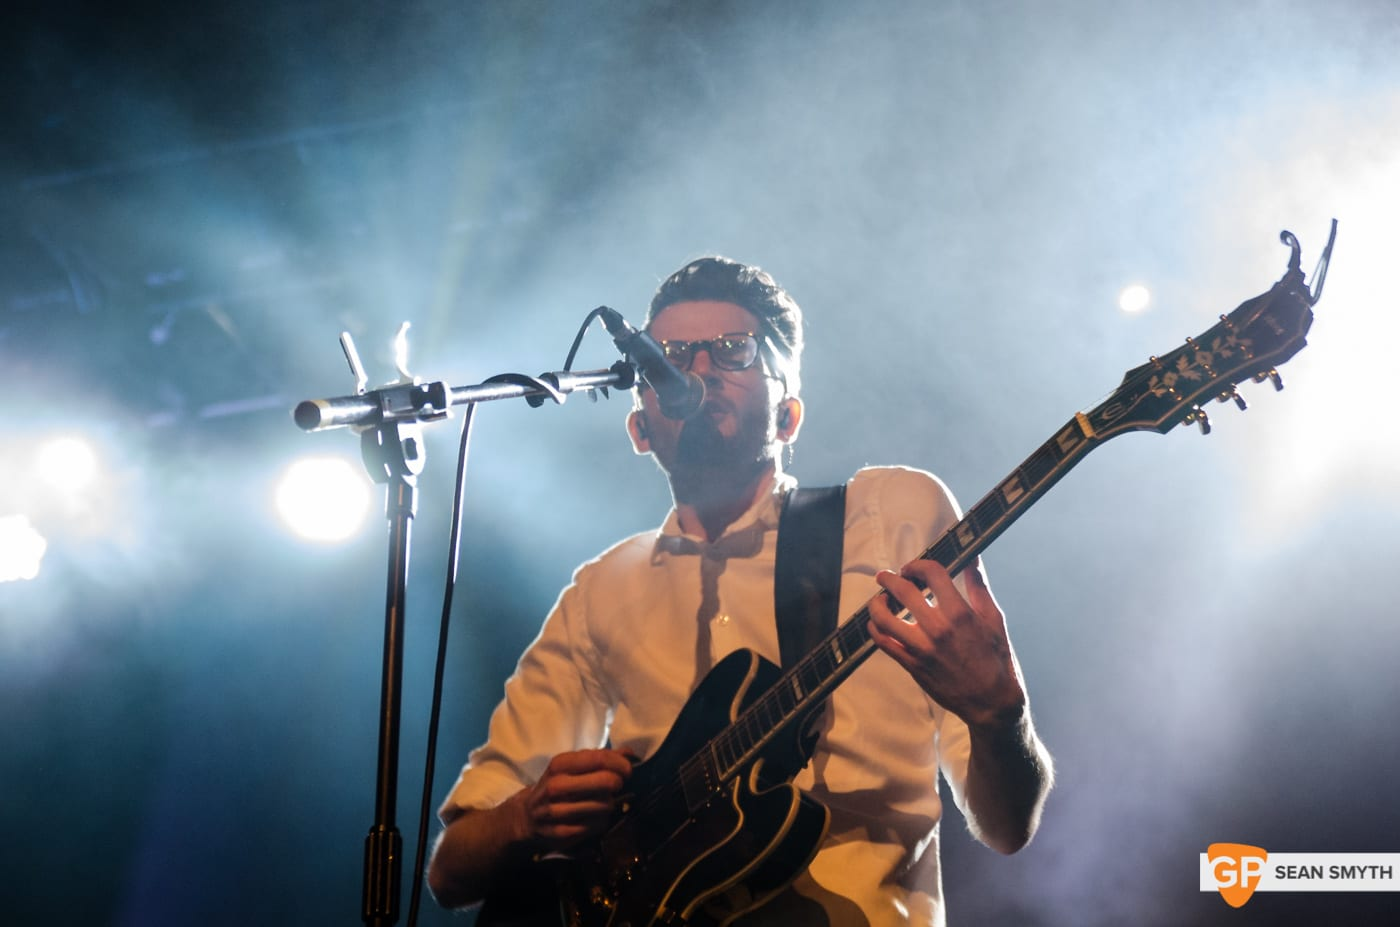 hudson-taylor-at-the-olympia-theatre-26-2-15-by-sean-smyth-1-of-26_16569197878_o